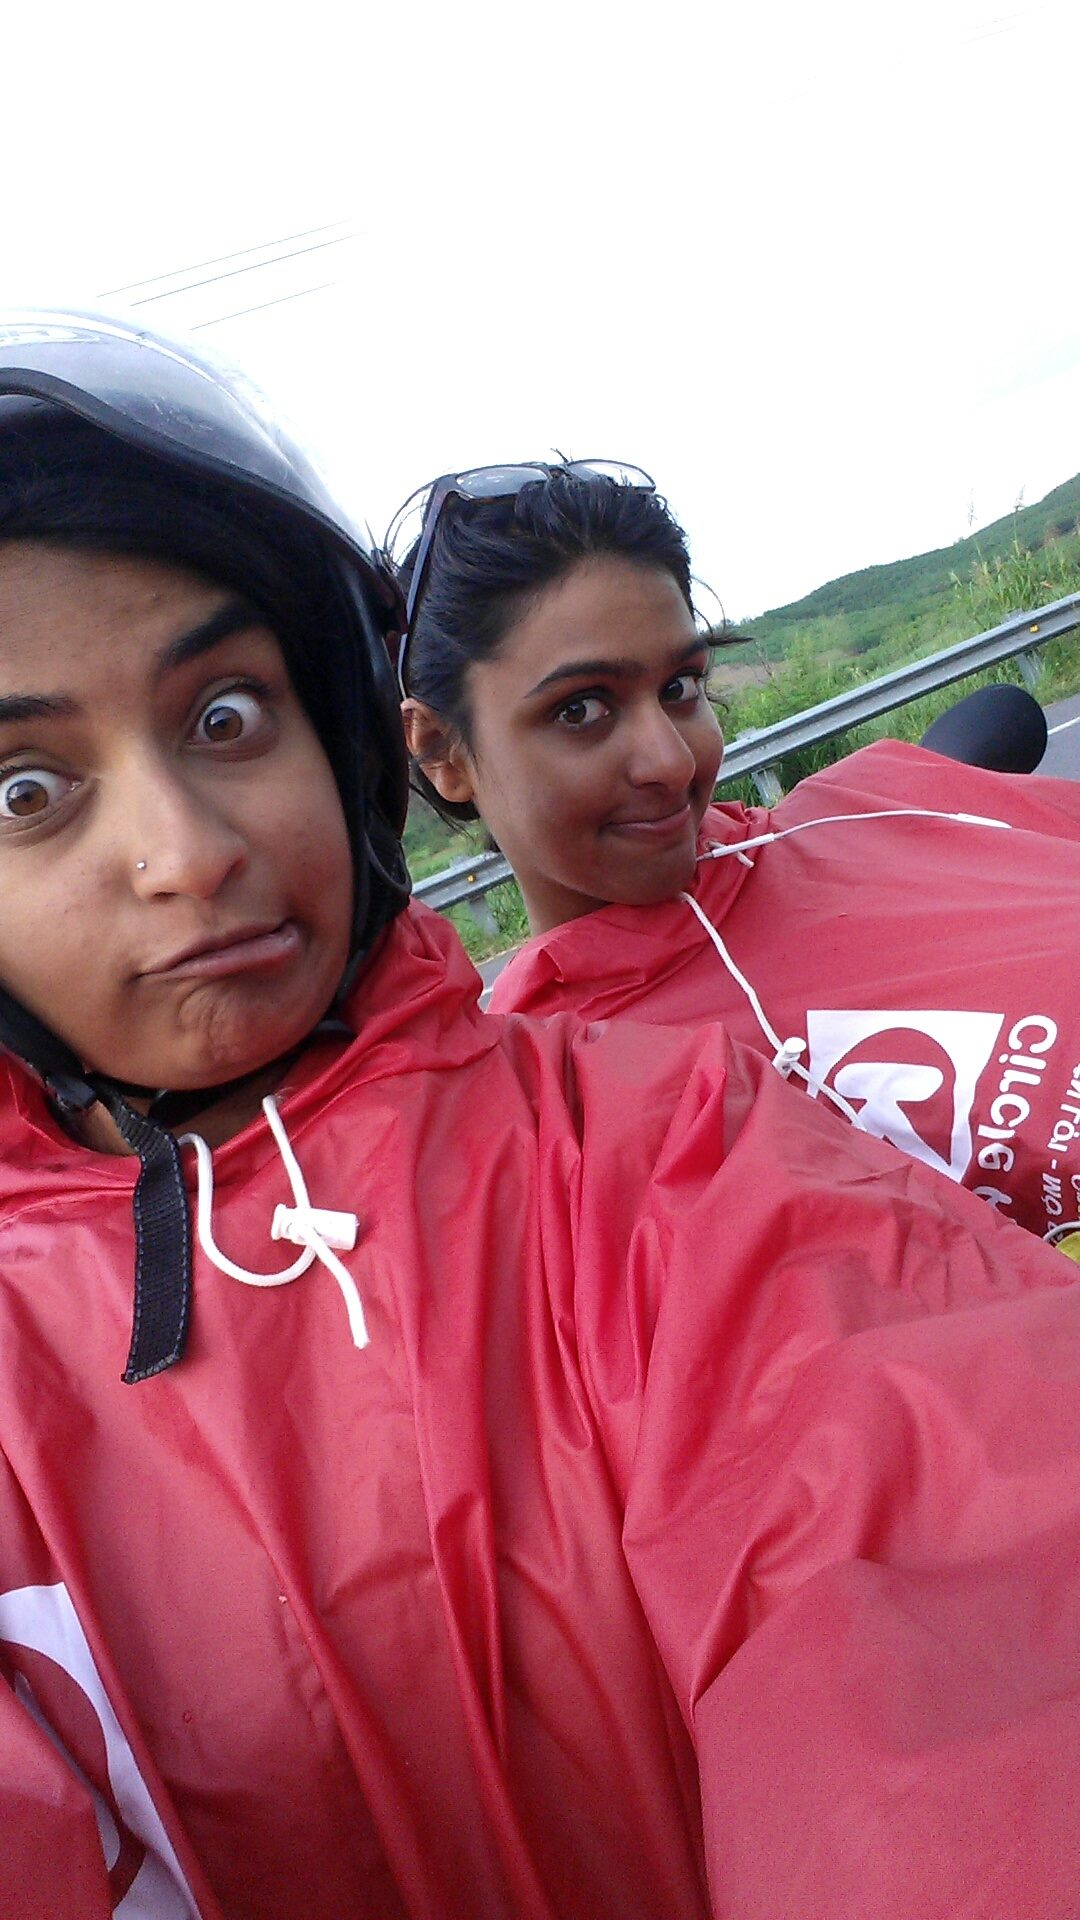 Us wearing our glorious ponchos